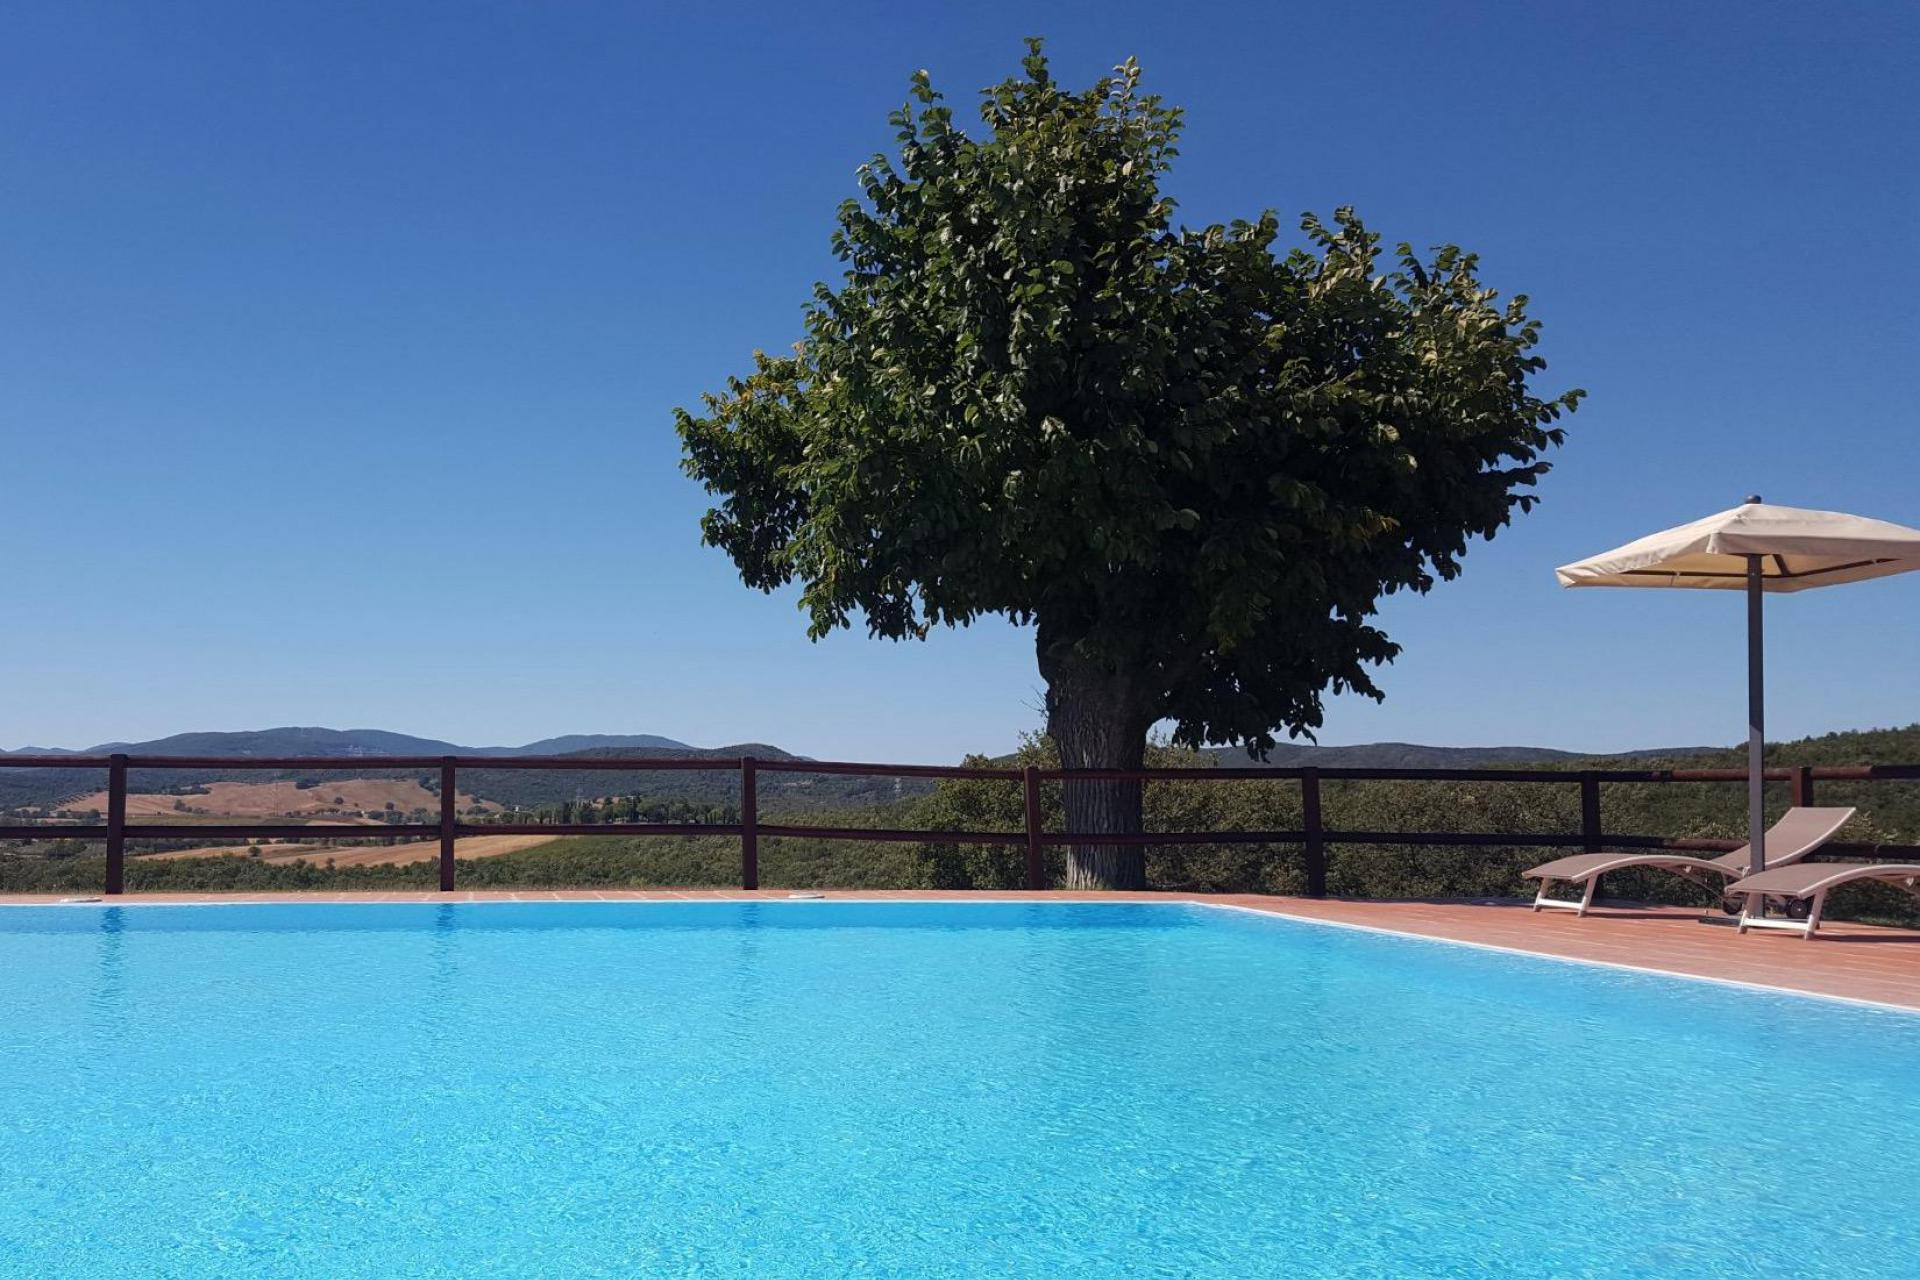 Agriturismo Tuscany Agriturismo in a quiet and rural location in Tuscany